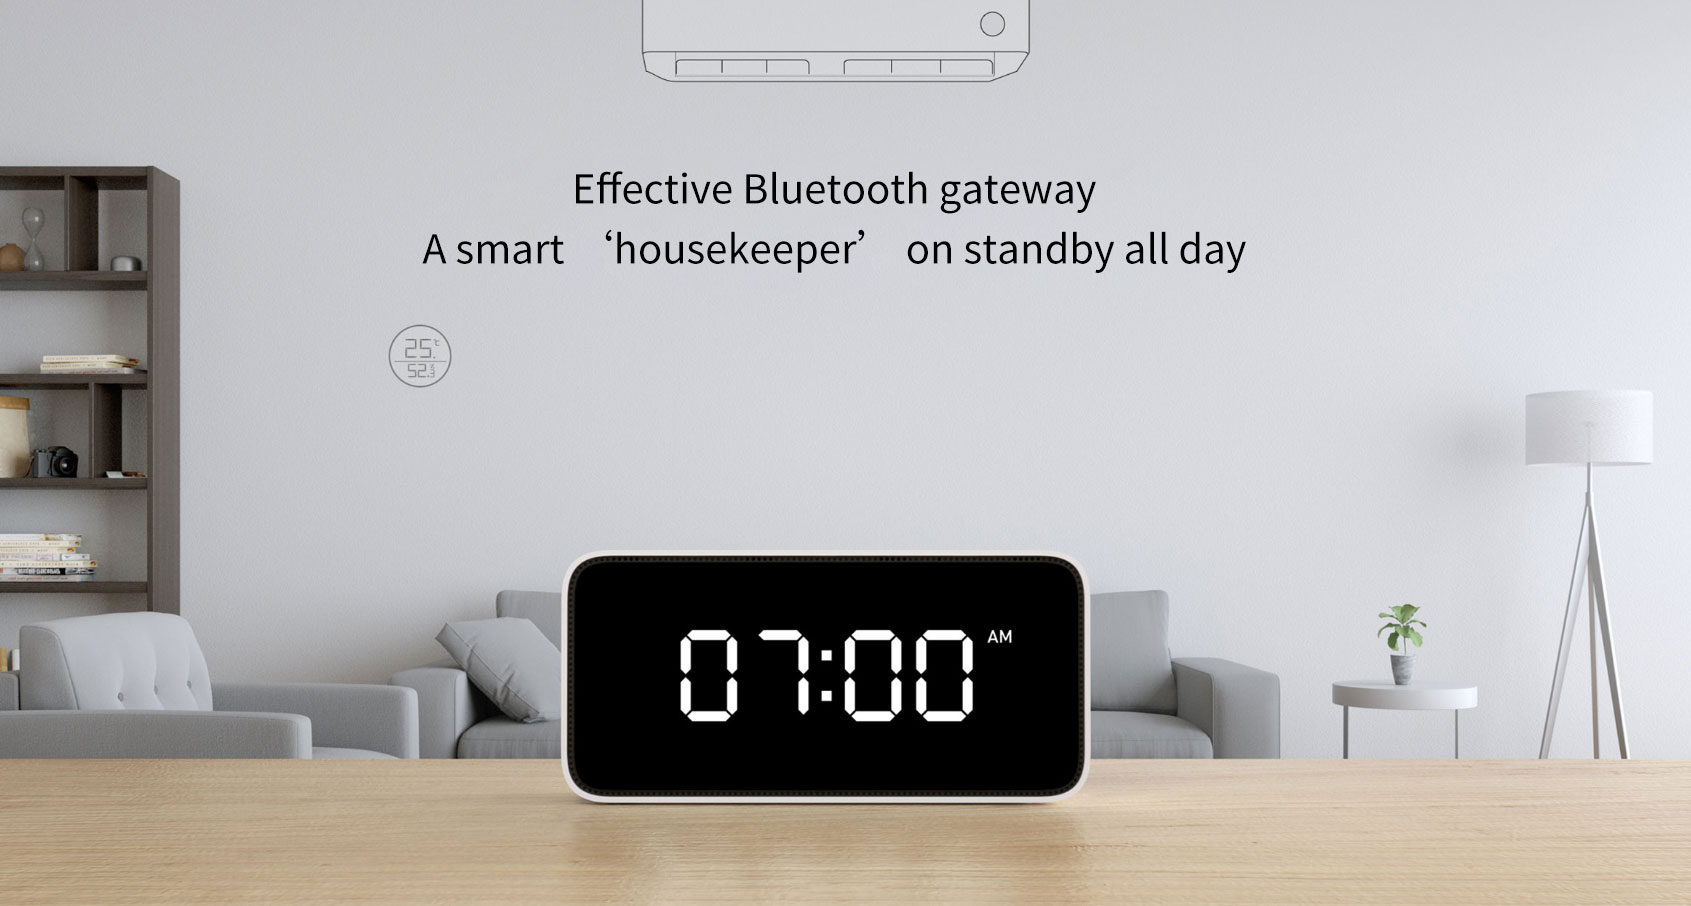 Xiaoai Smart Voice APP Control Weather Broadcast Alarm Clock Xiaomi AI Speaker from Xiaomi Youpin